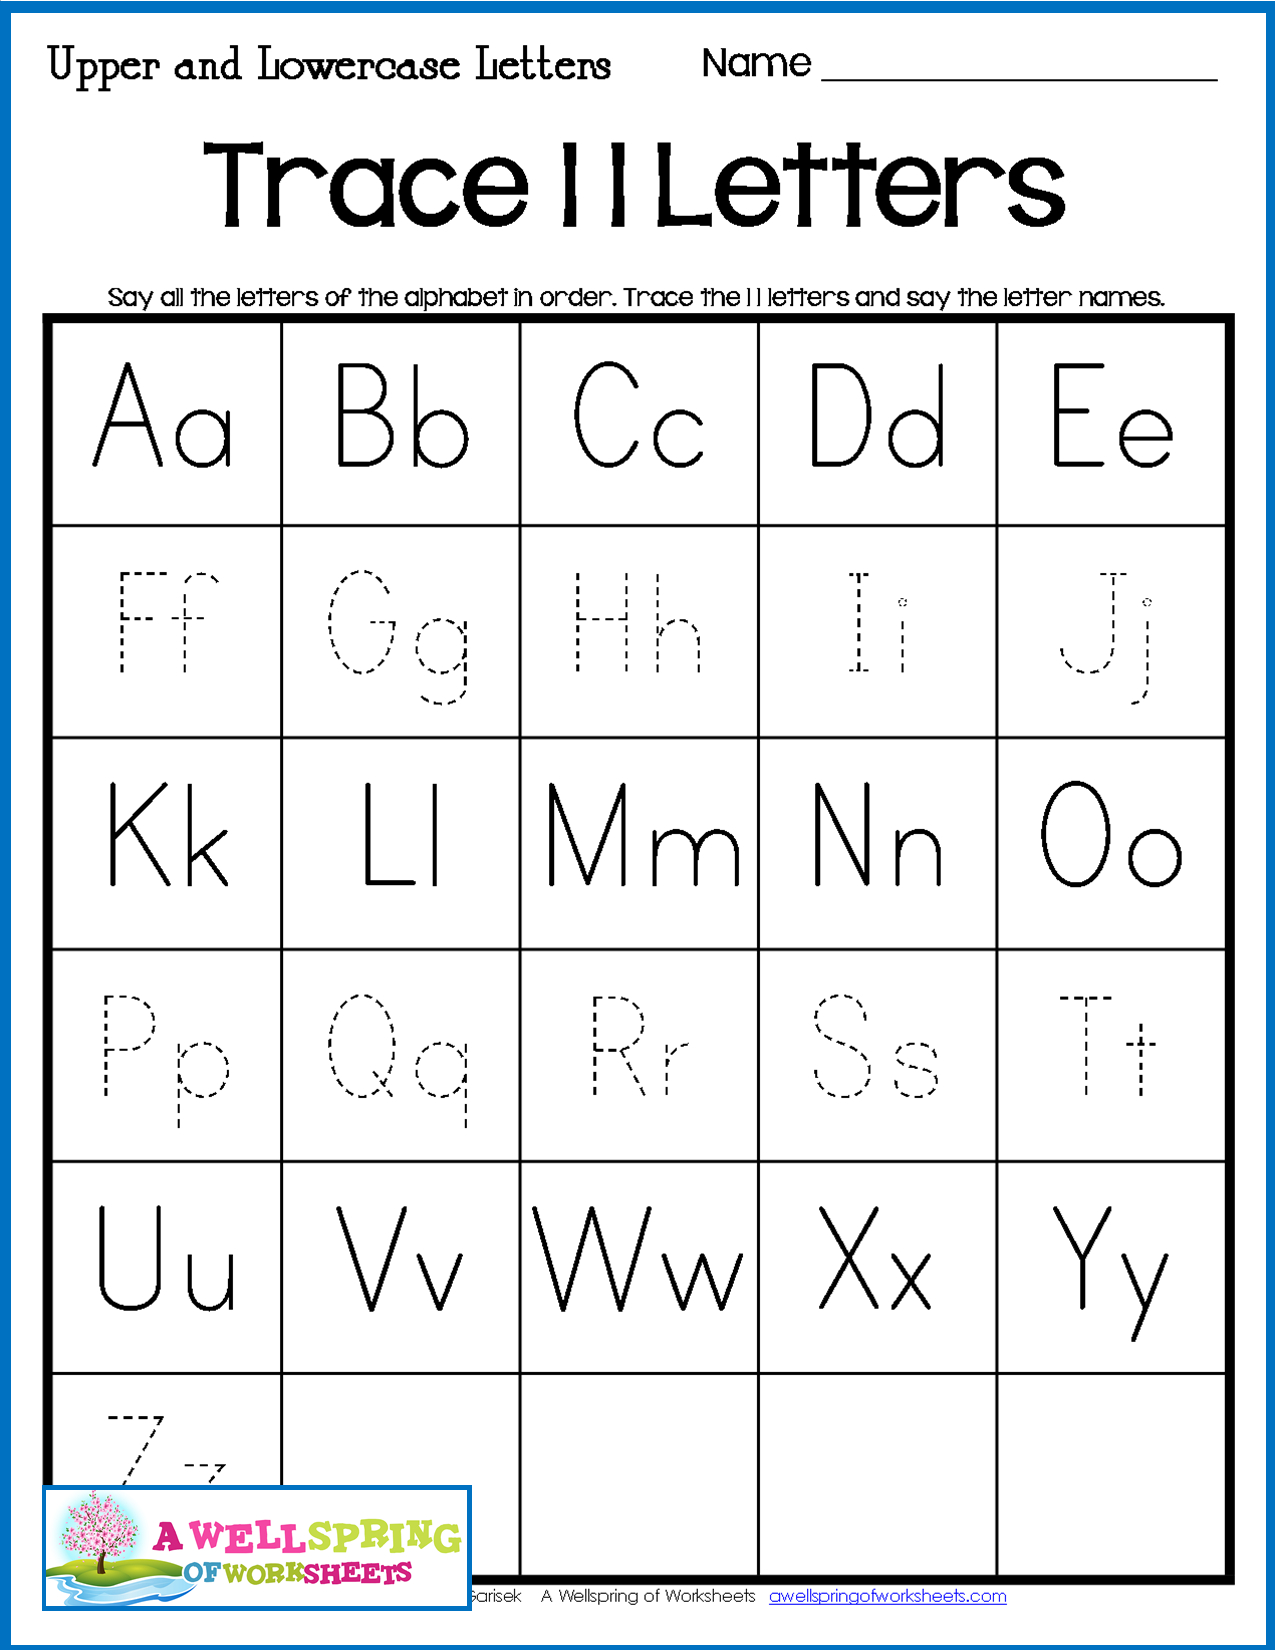 Alphabet Tracing Worksheets - Uppercase & Lowercase Letters for Tracing Letters Worksheets Name